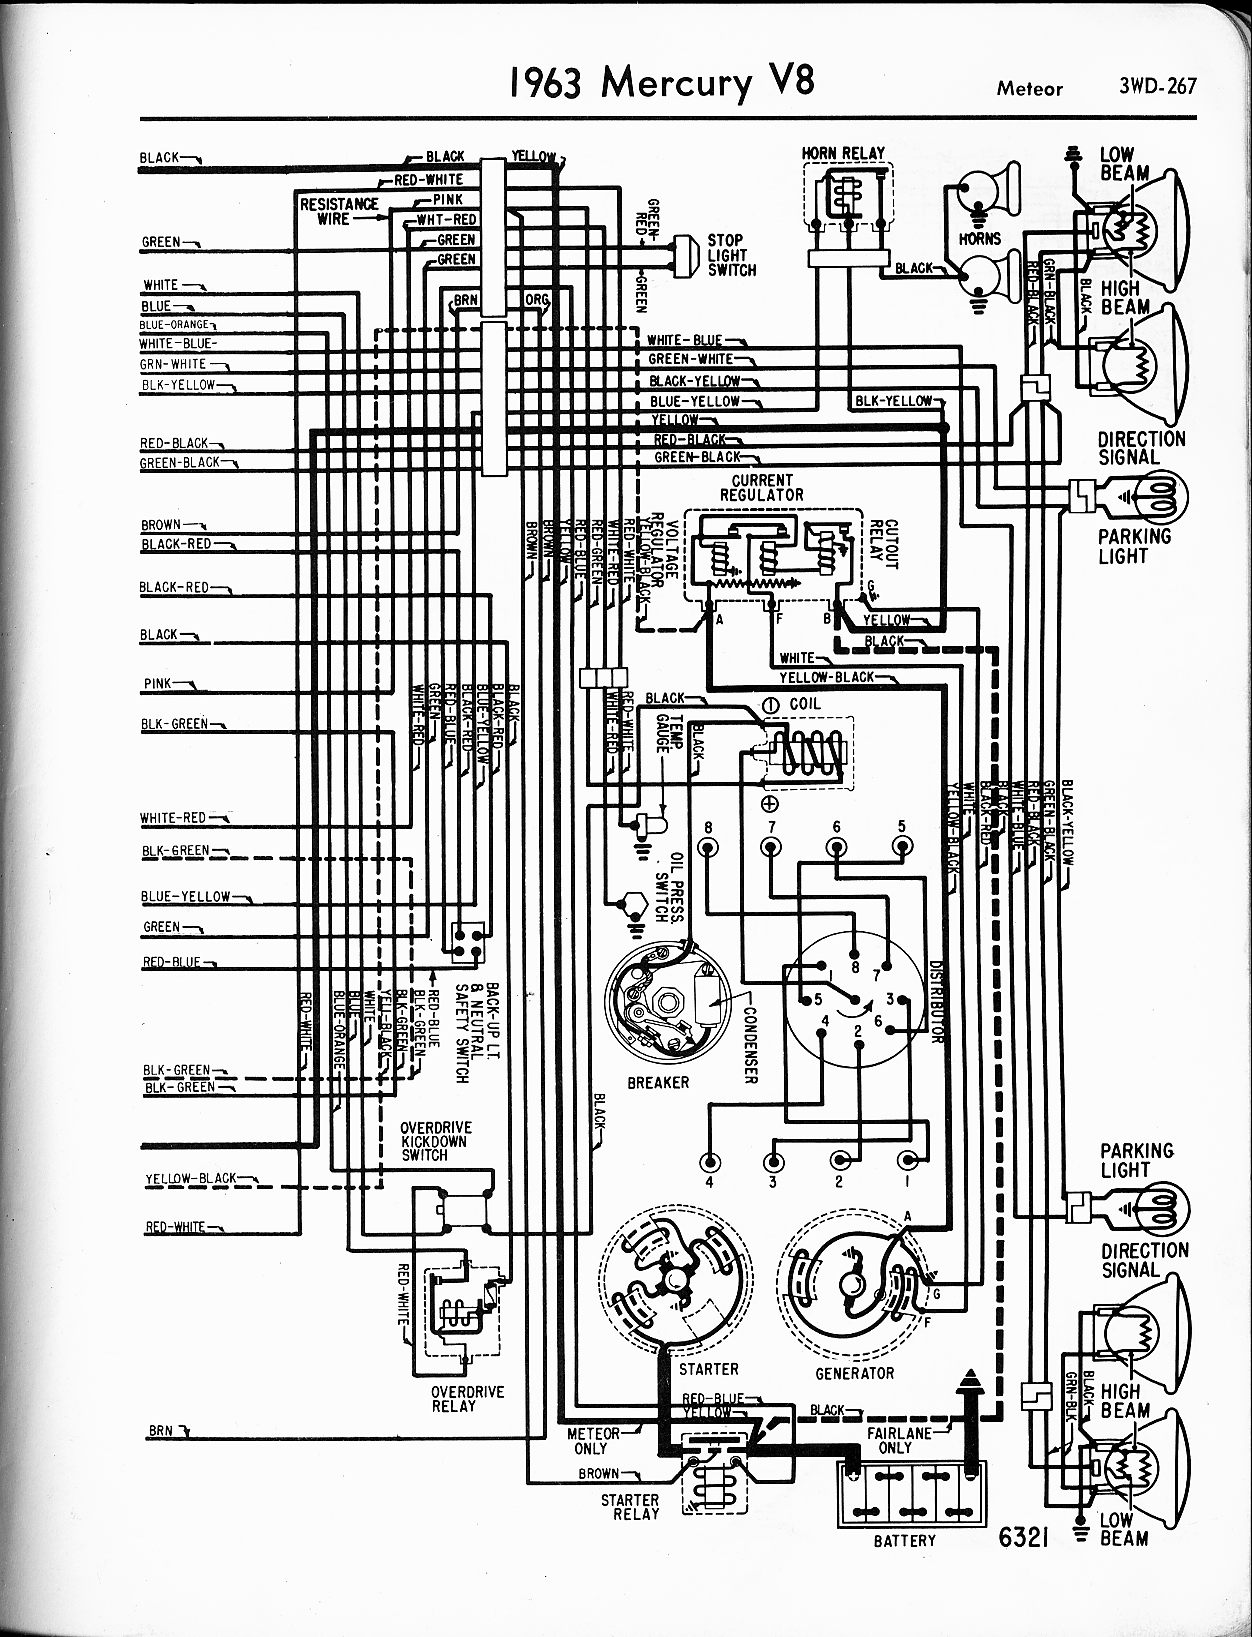 1969 Corvette Front Bumper Installation as well Generation Wiring Schematics Chevy Nova Forum Models 1965 Chevelle Diagram besides HP PartList furthermore Ignition System also Catalog3. on 1958 chevy truck wiring diagram